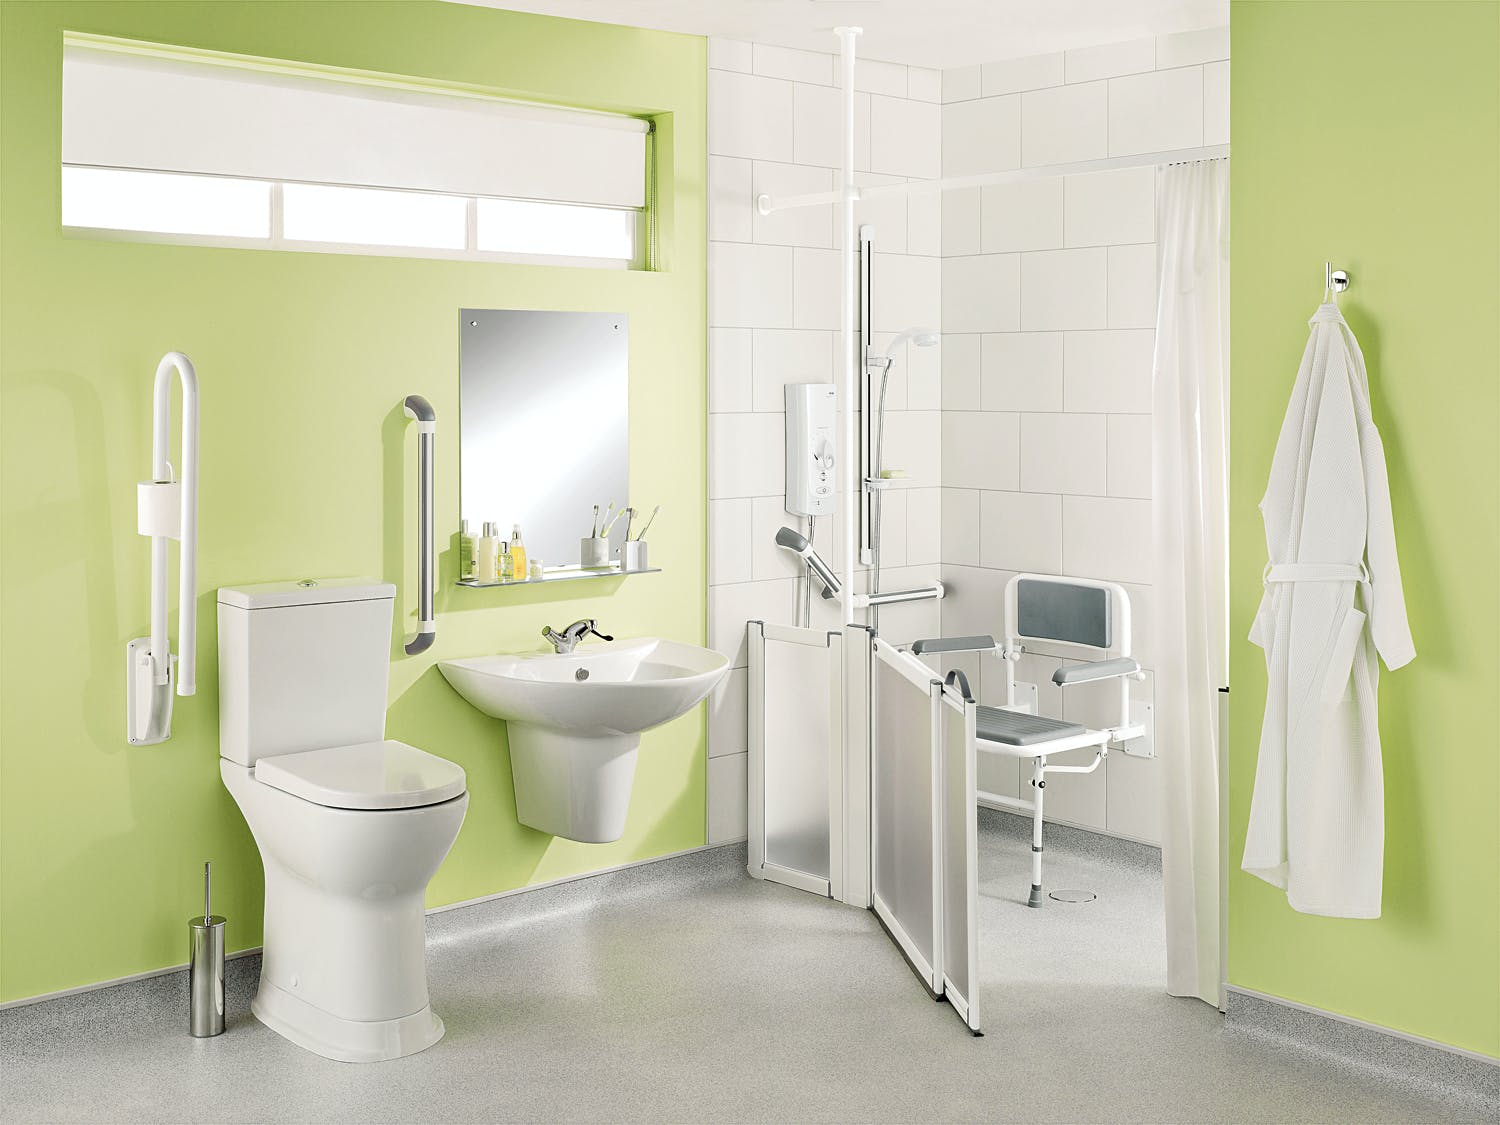 Wet Room Ideas For Disabled People More Ability